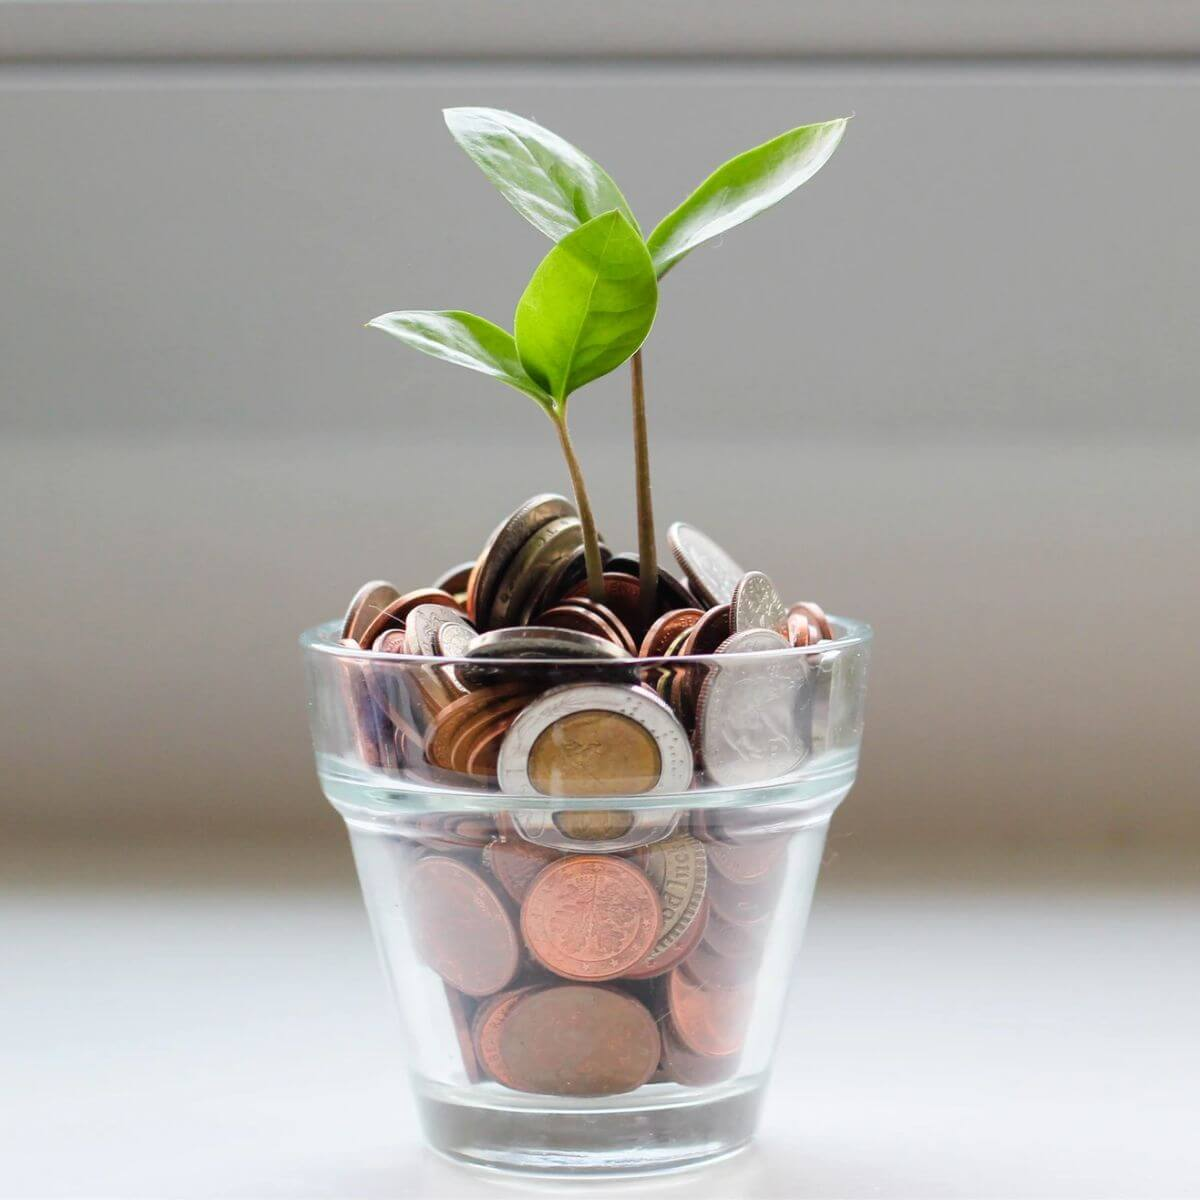 Glass of coins with a plant growing out of it.